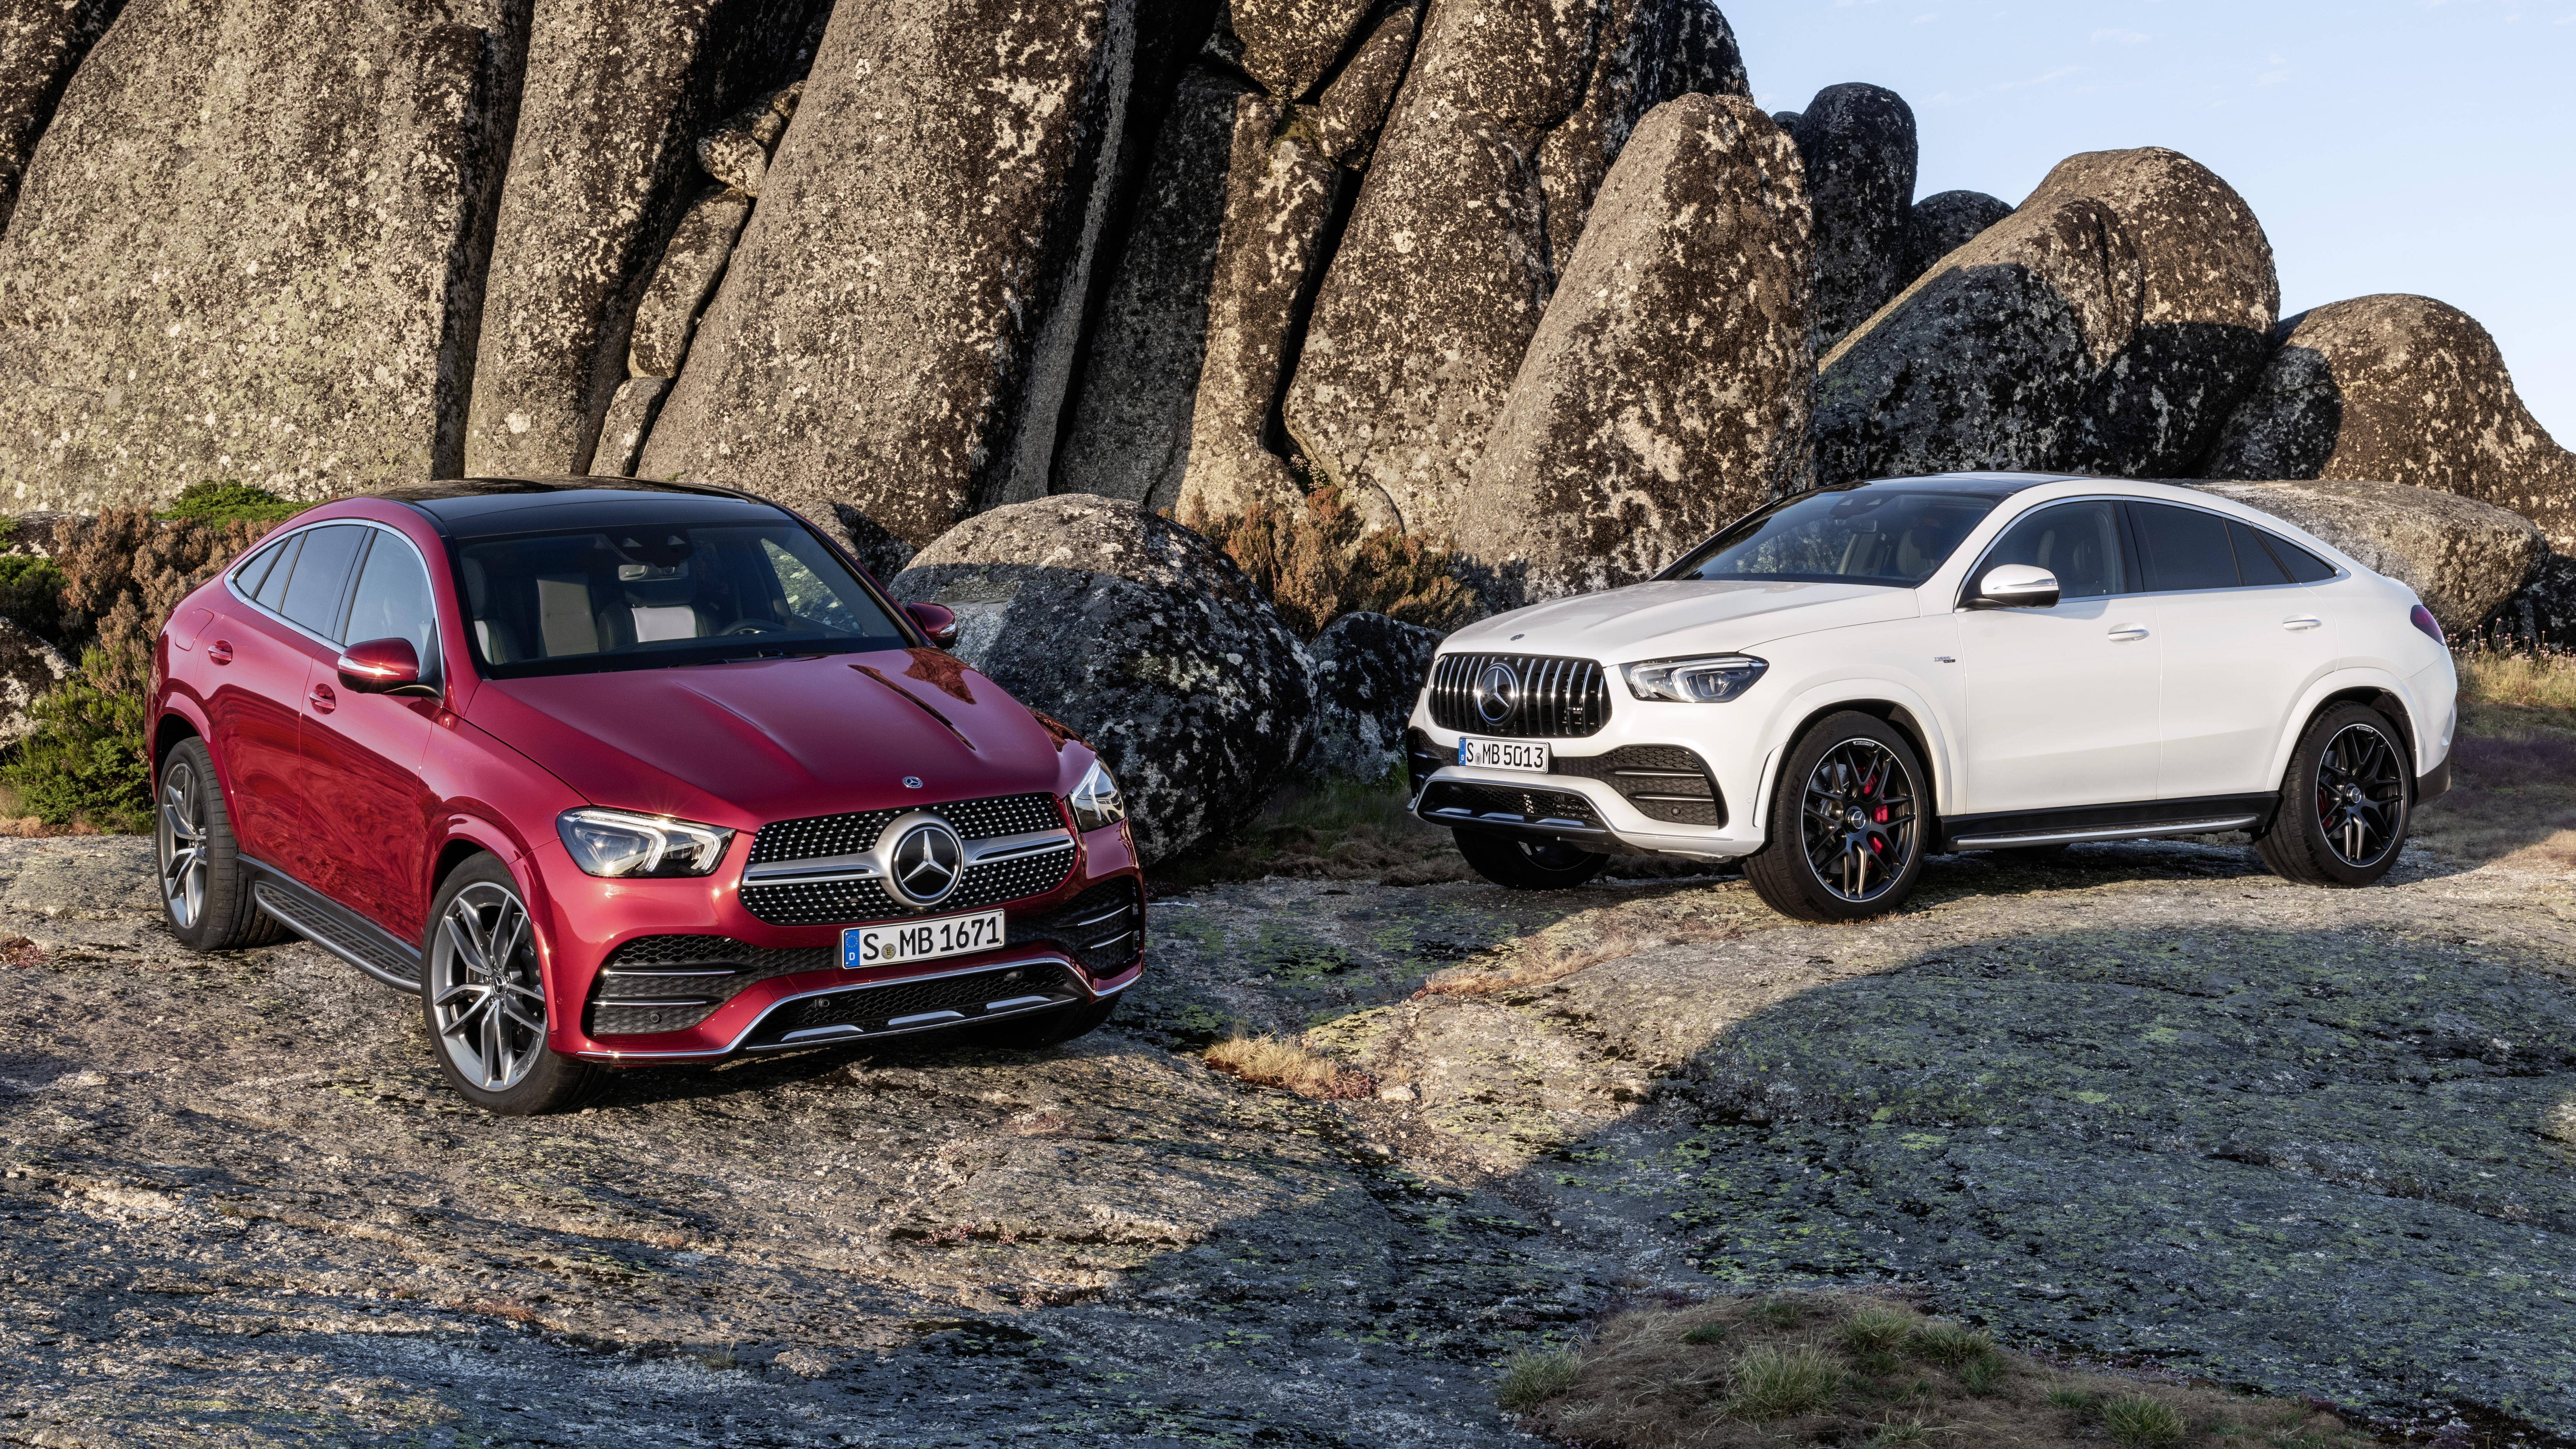 2020 Mercedes-Benz GLE Coupe price and specs